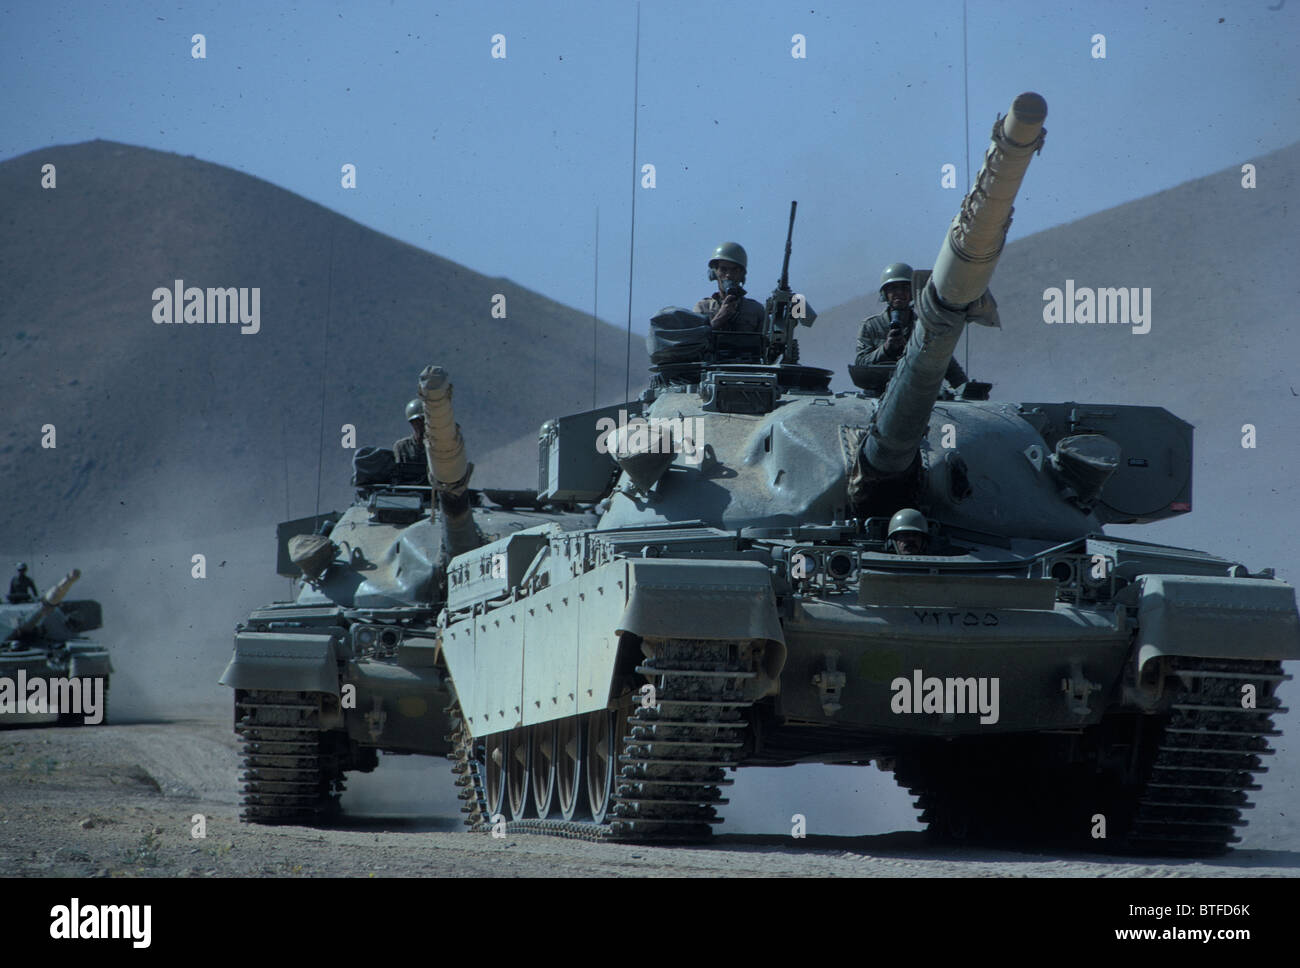 Iranian Army tanks on manoeuvres in  the desert in early 1970s during the regime of the Shah of Iran Stock Photo